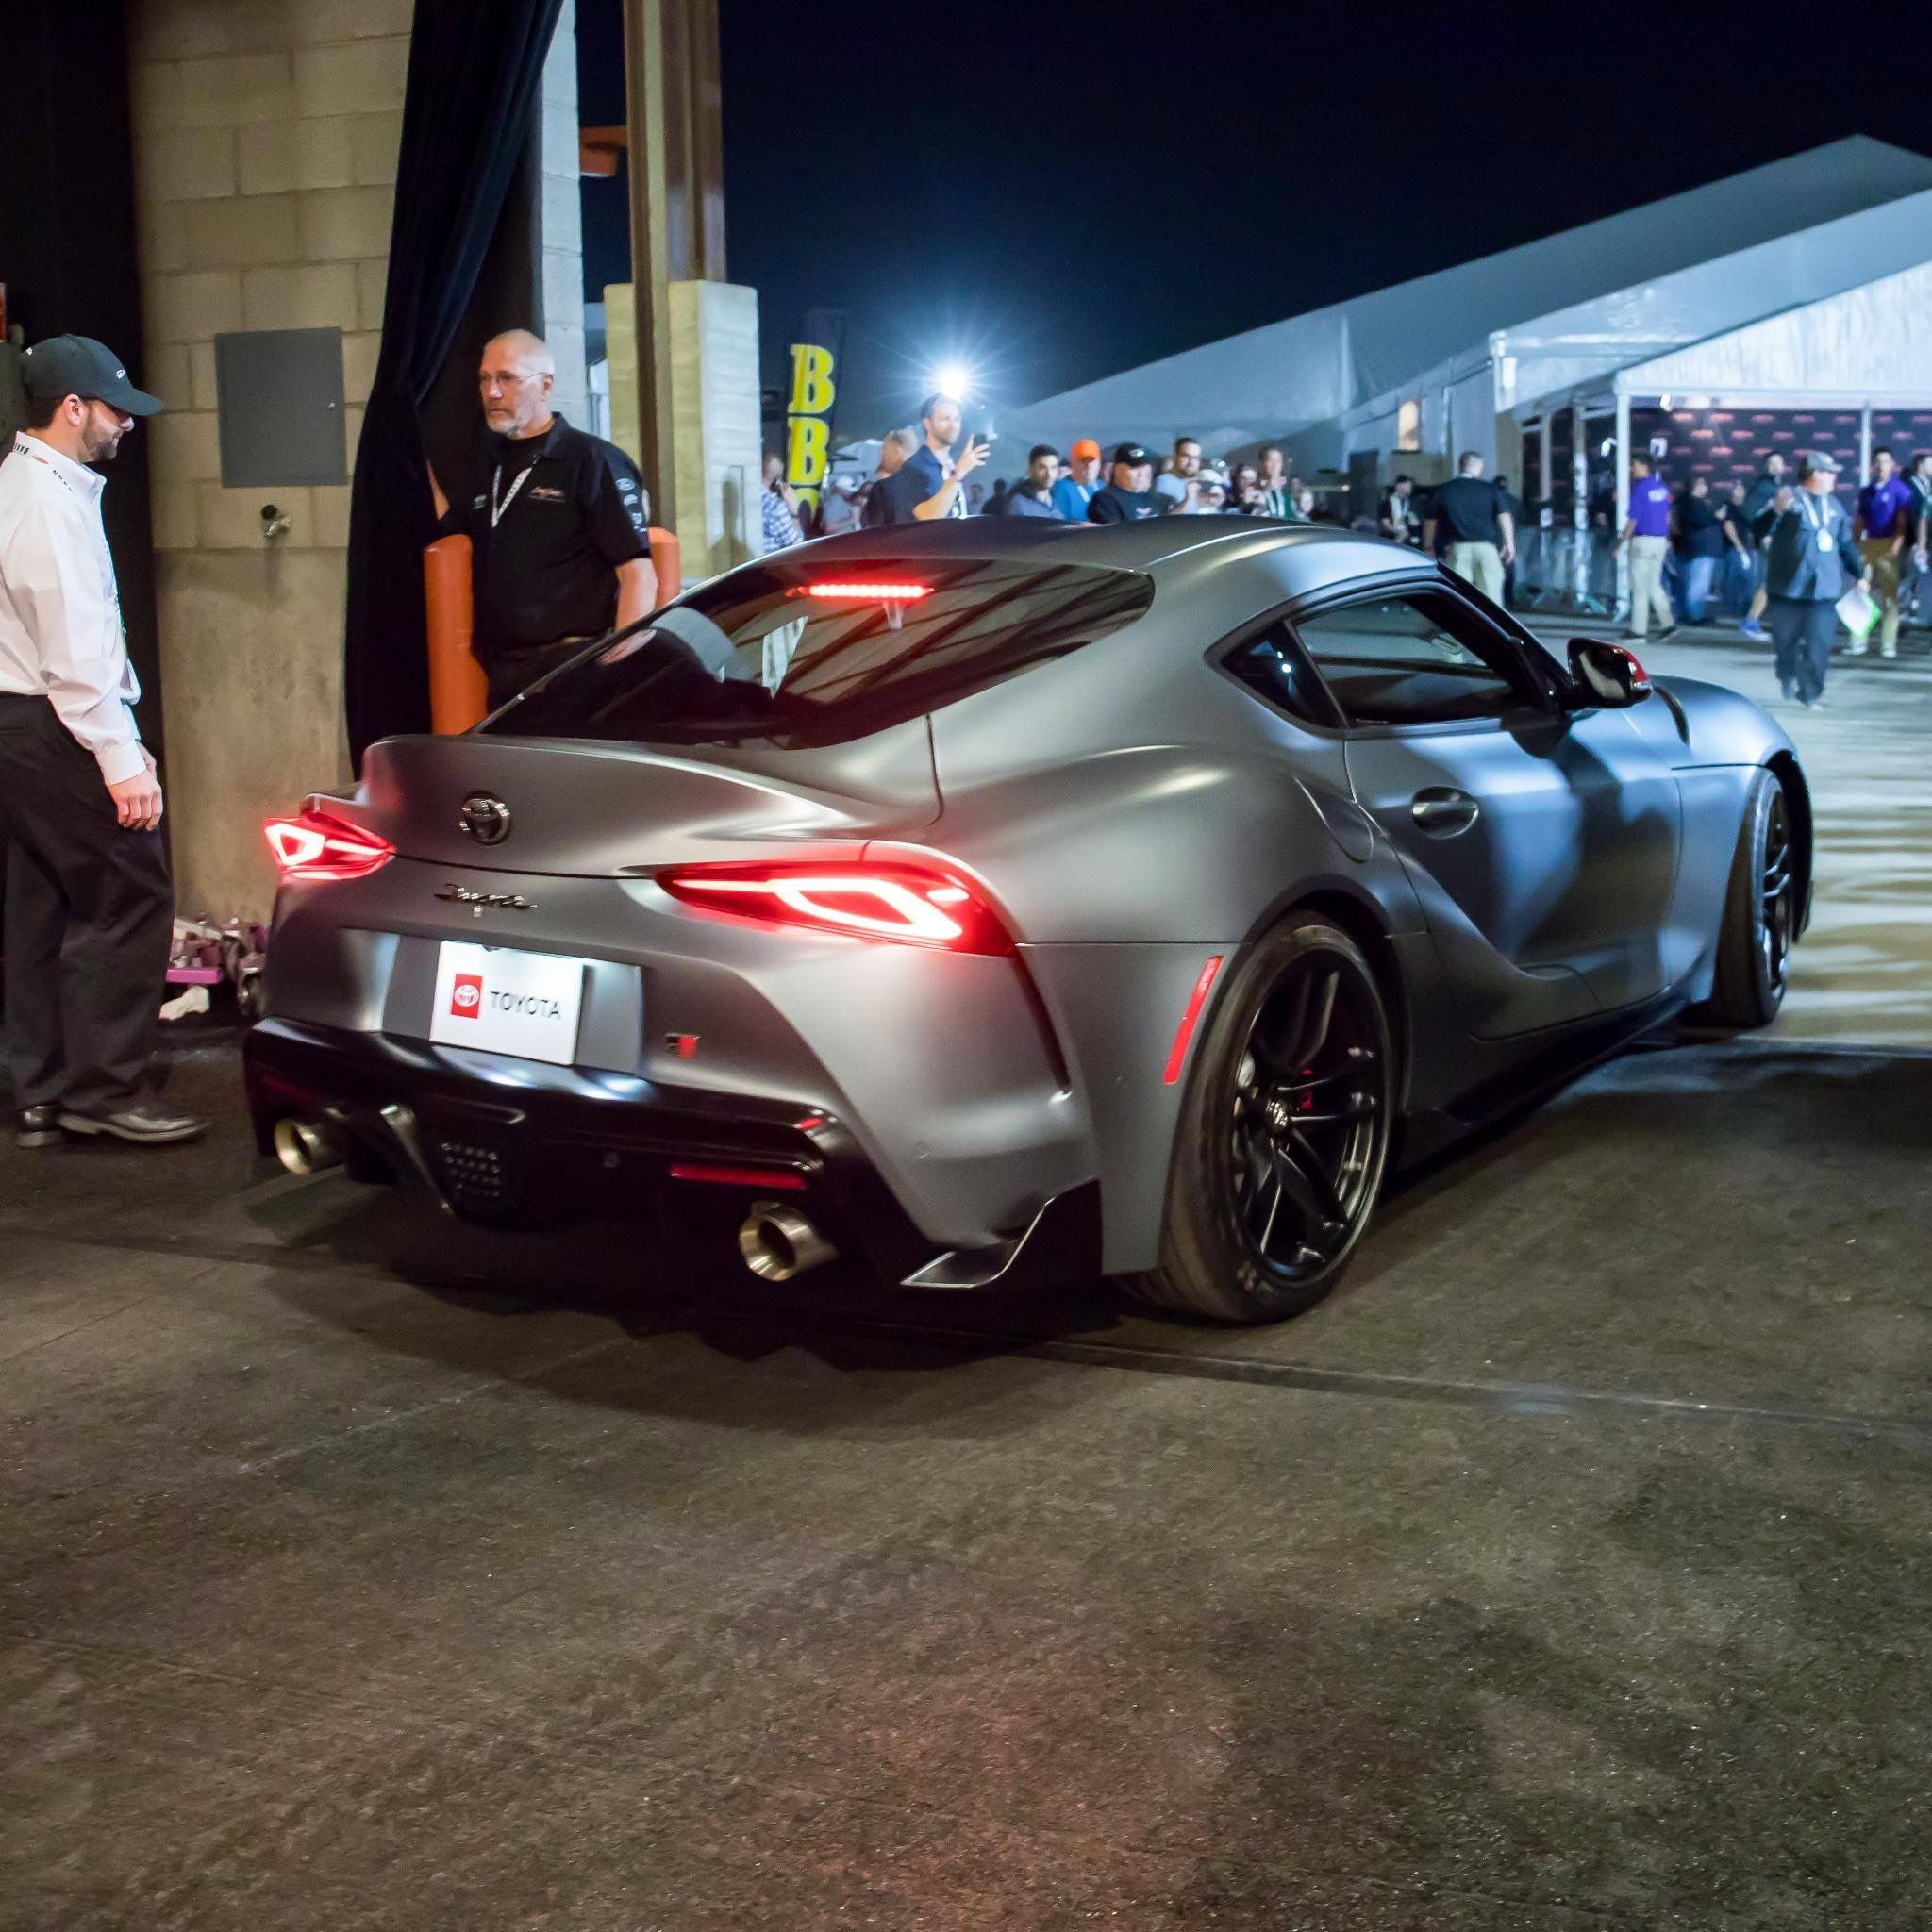 Pin By Odd Research Group On Four Wheels New Toyota Supra Toyota Supra Dream Cars